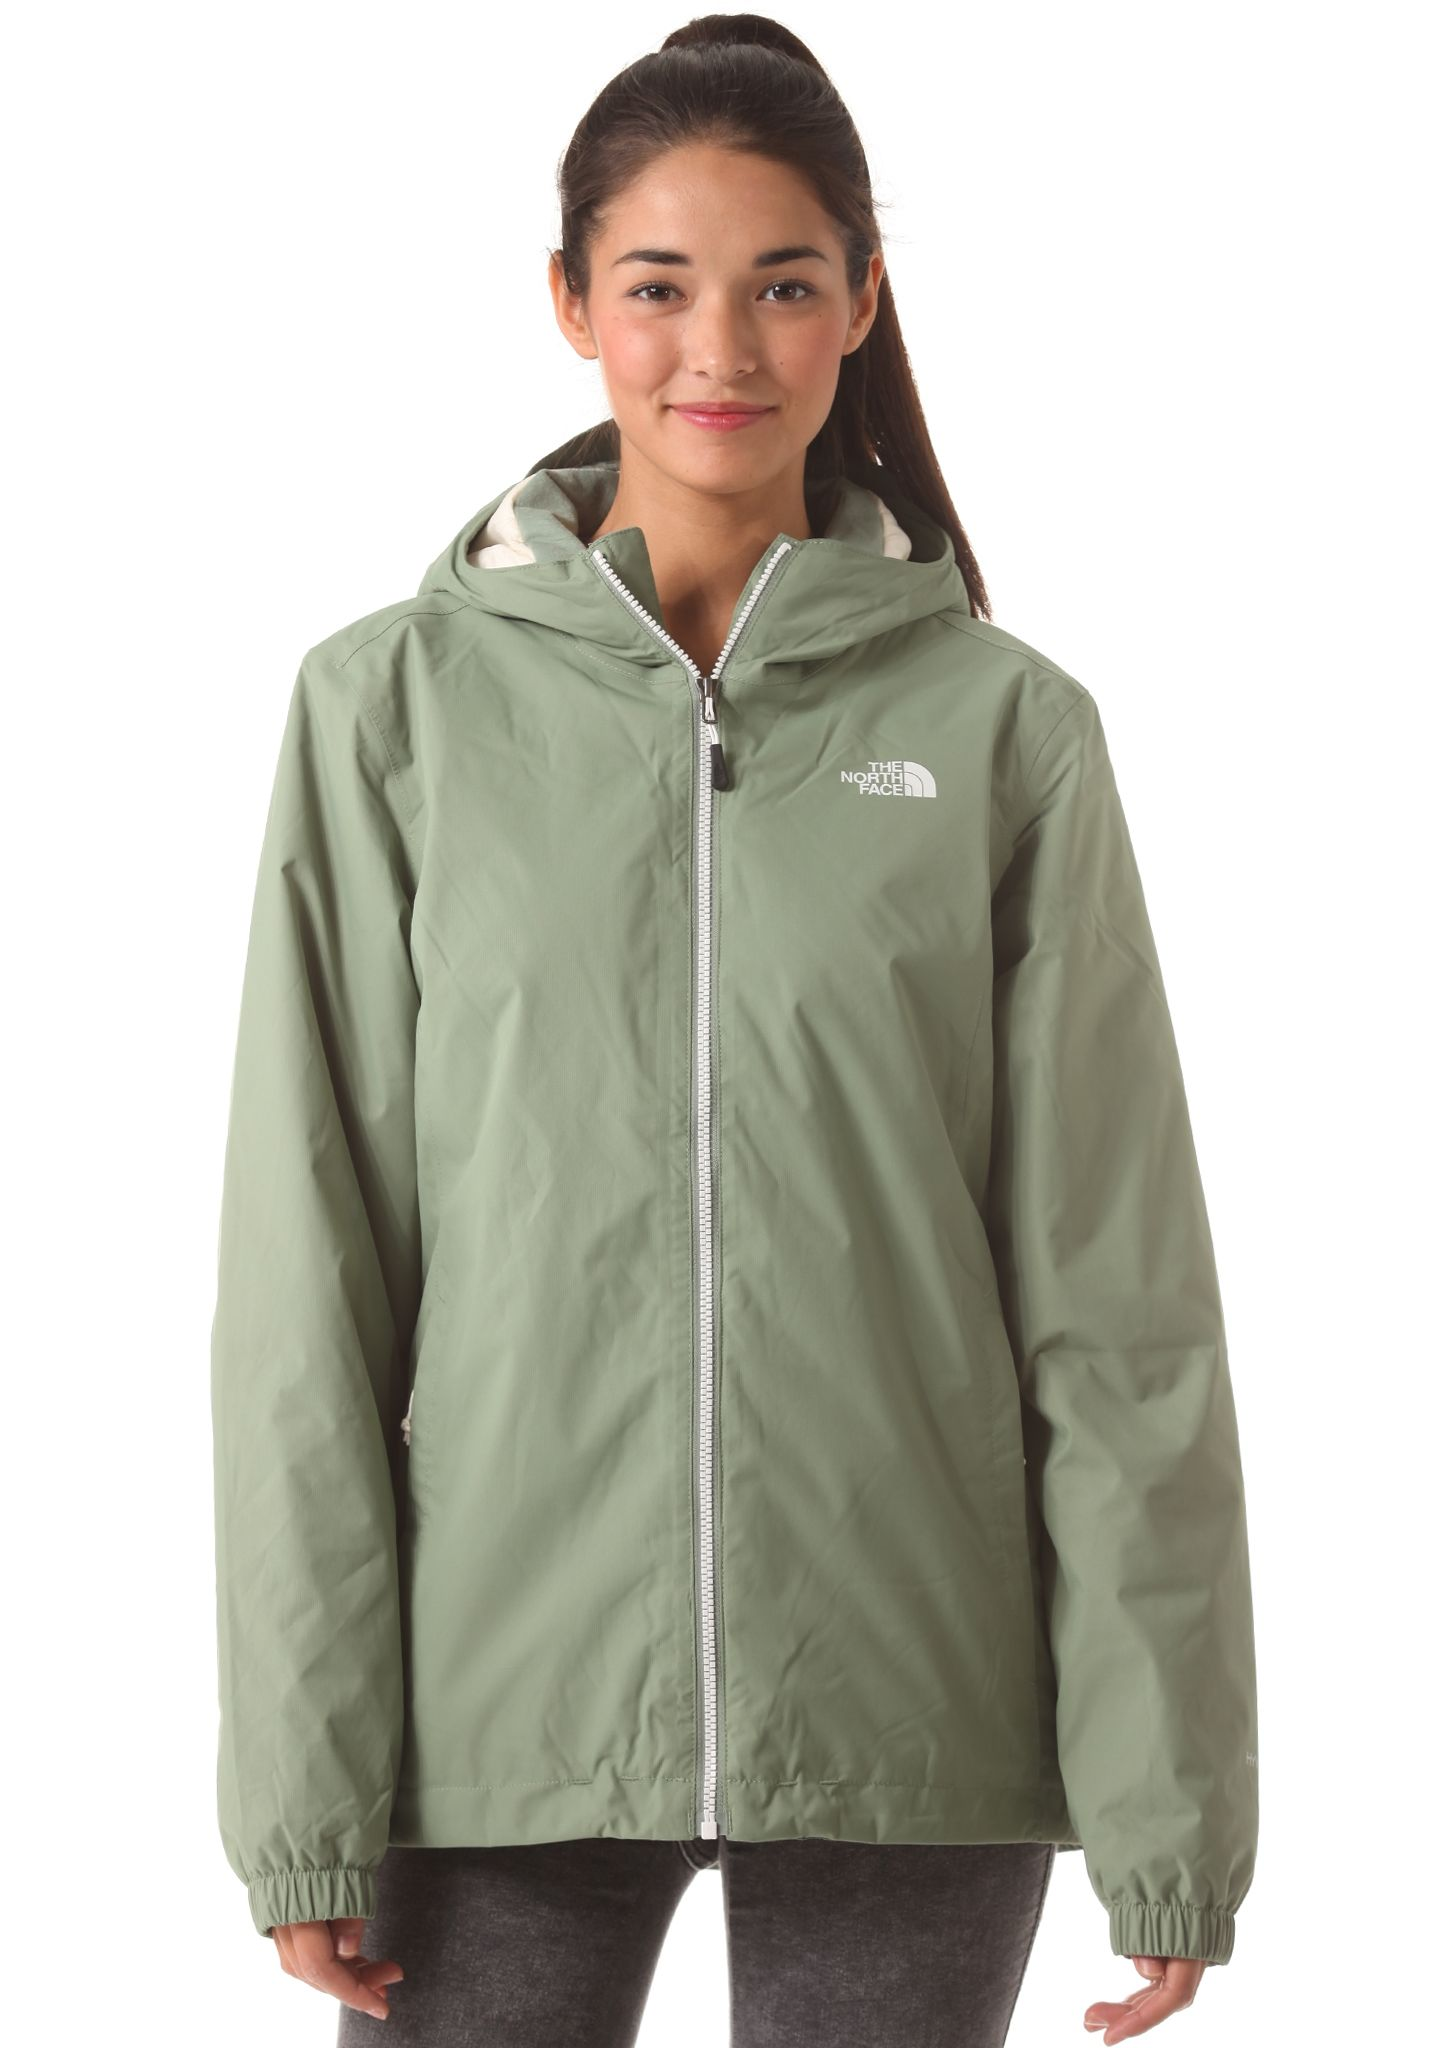 Chaqueta Face The Mujeres Insulated North Para Funcional Quest gIpwqBxHp